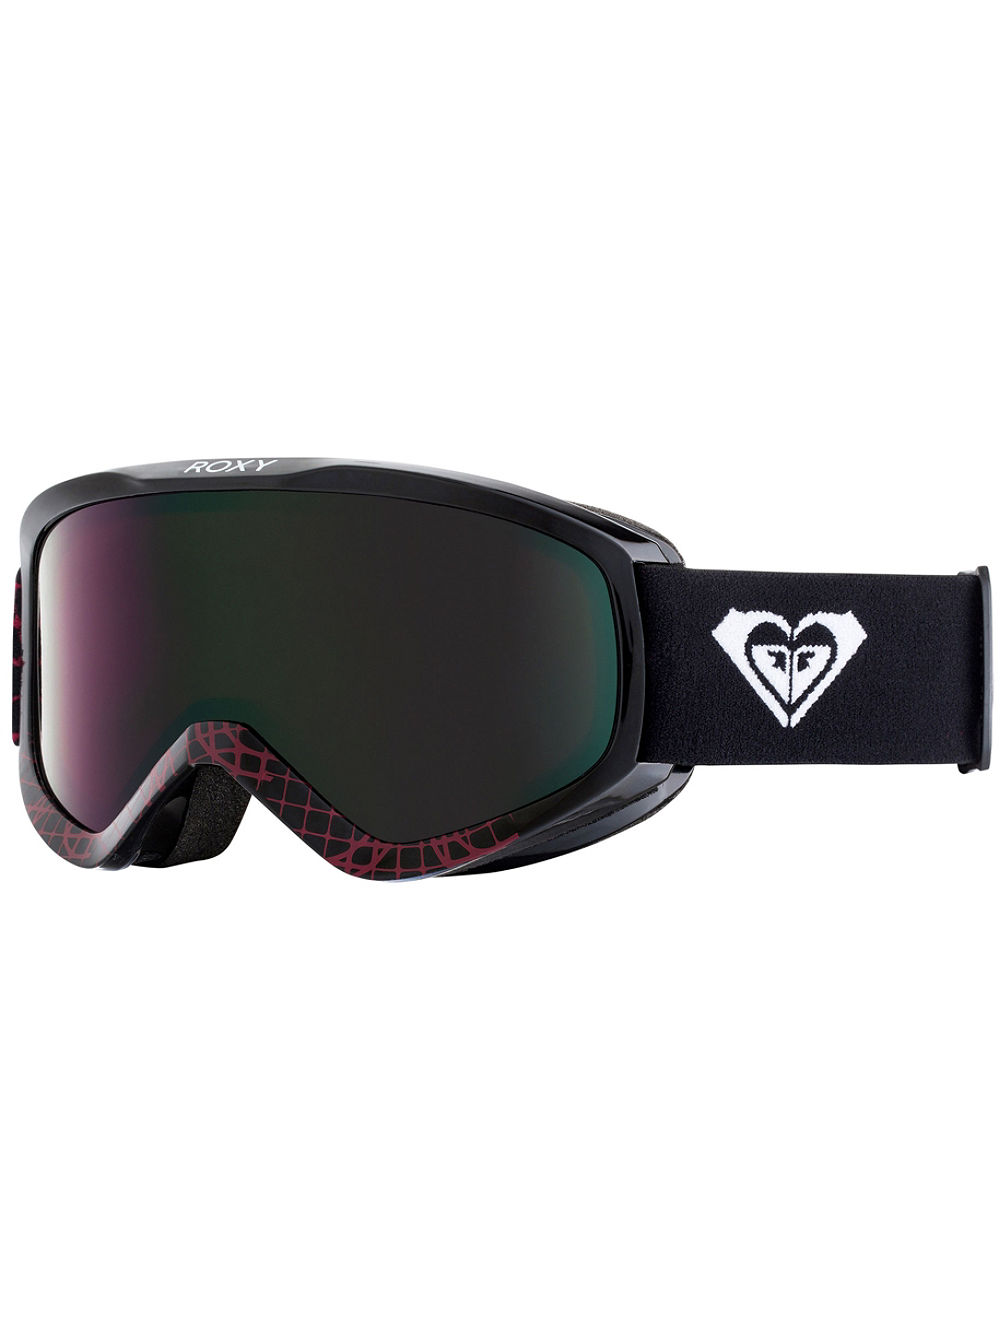 Day Dream True Black Goggle